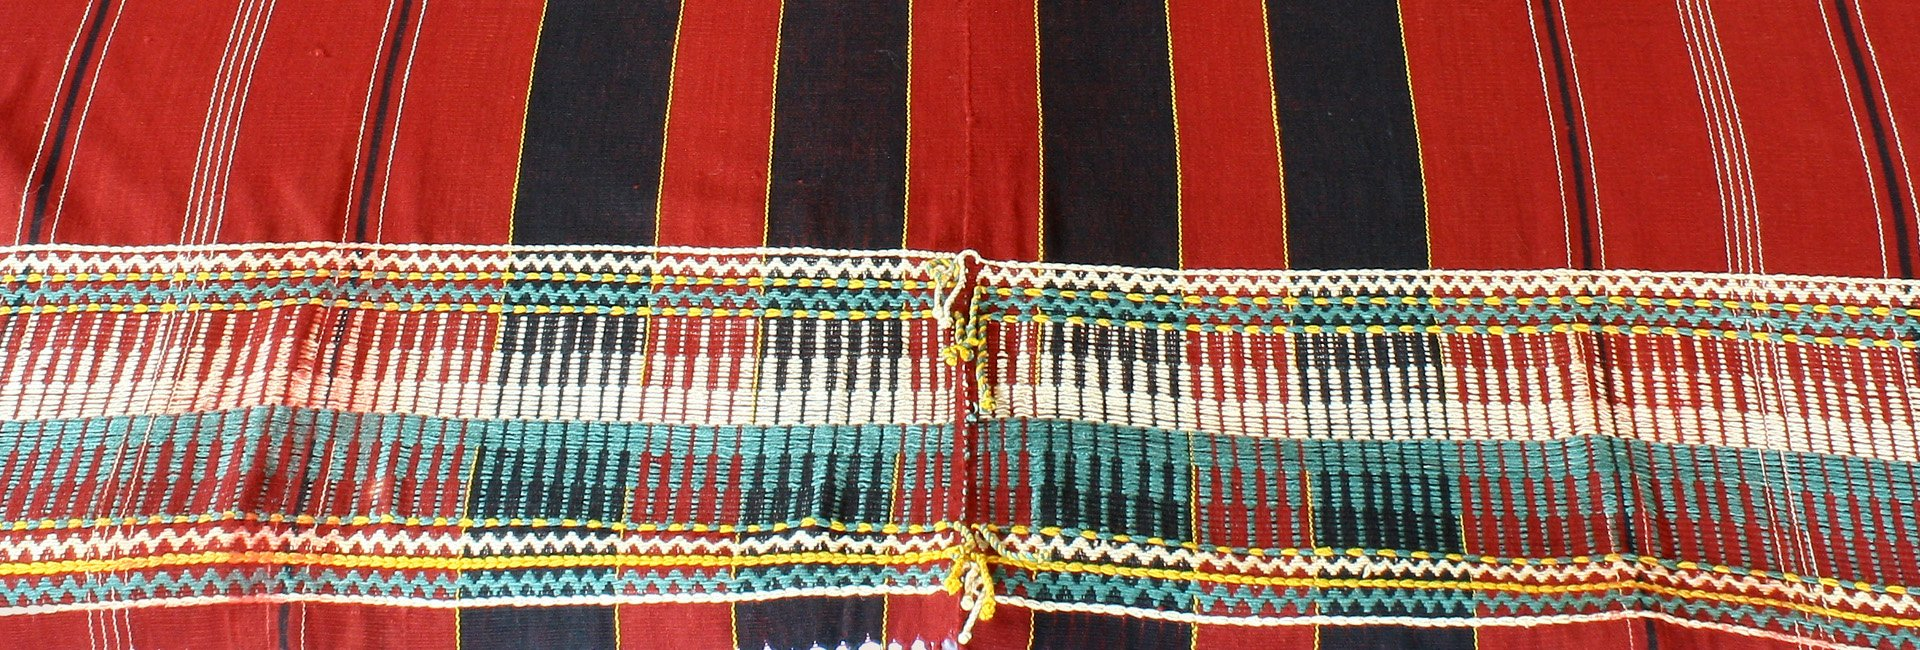 tribal textiles from Asia